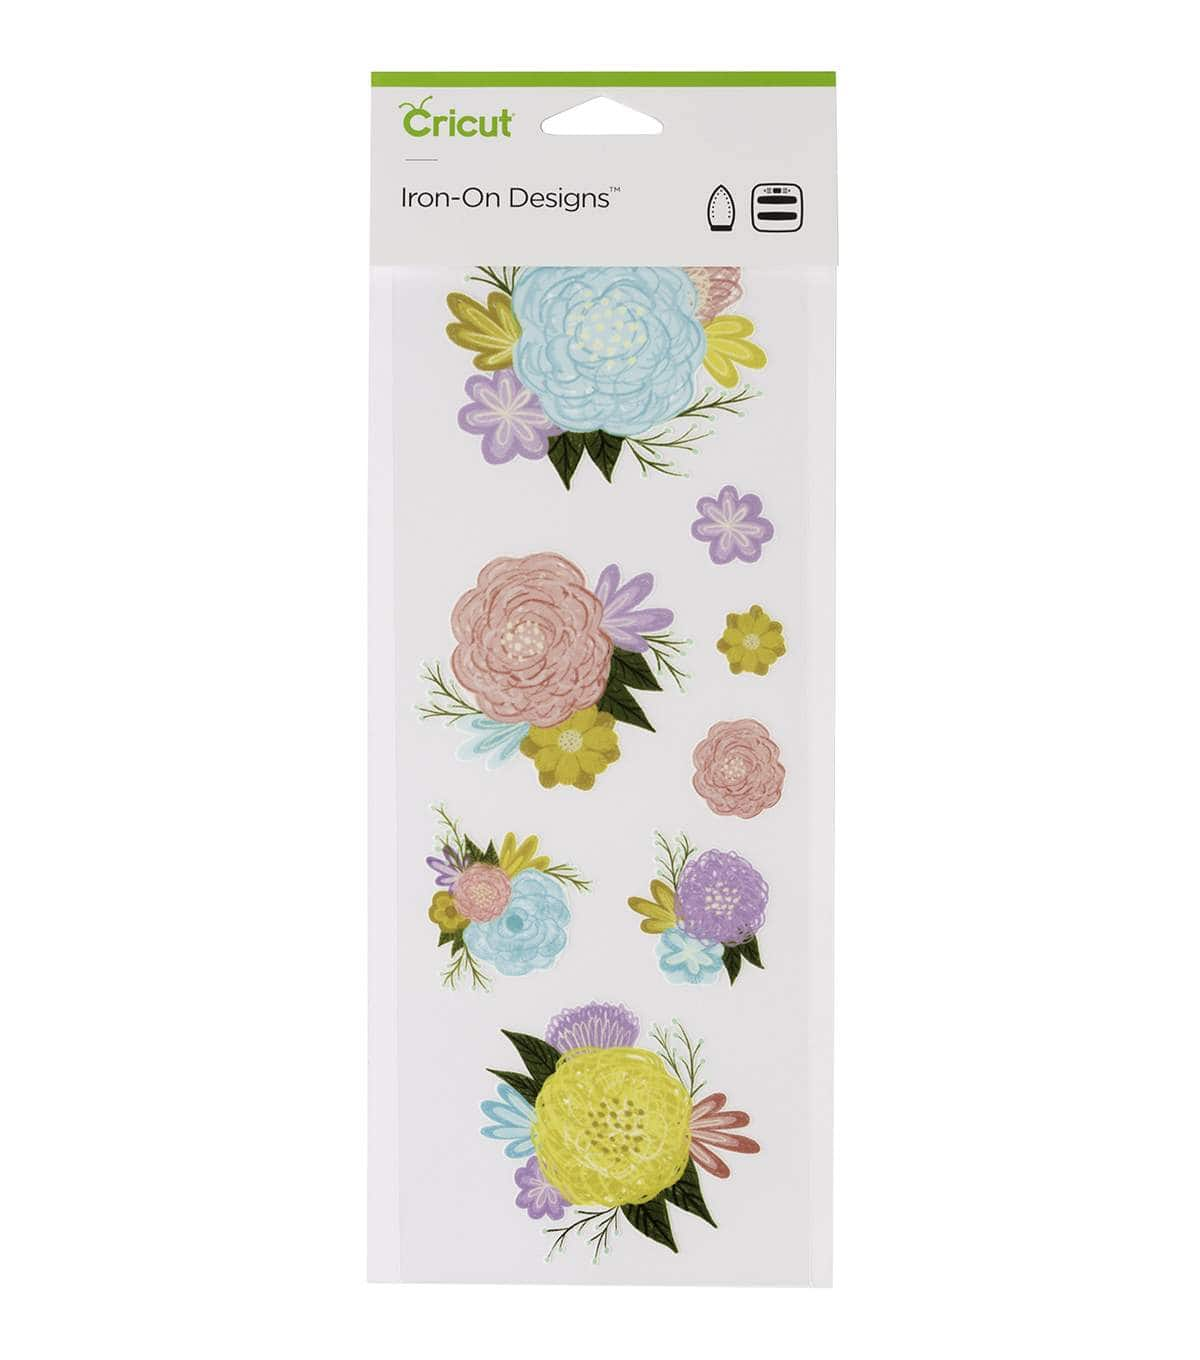 Cricut Small Flowers Iron On Design $2, Cricut Infusible Ink Baby Bodysuit (White) $2.80 & More + Free Shipping